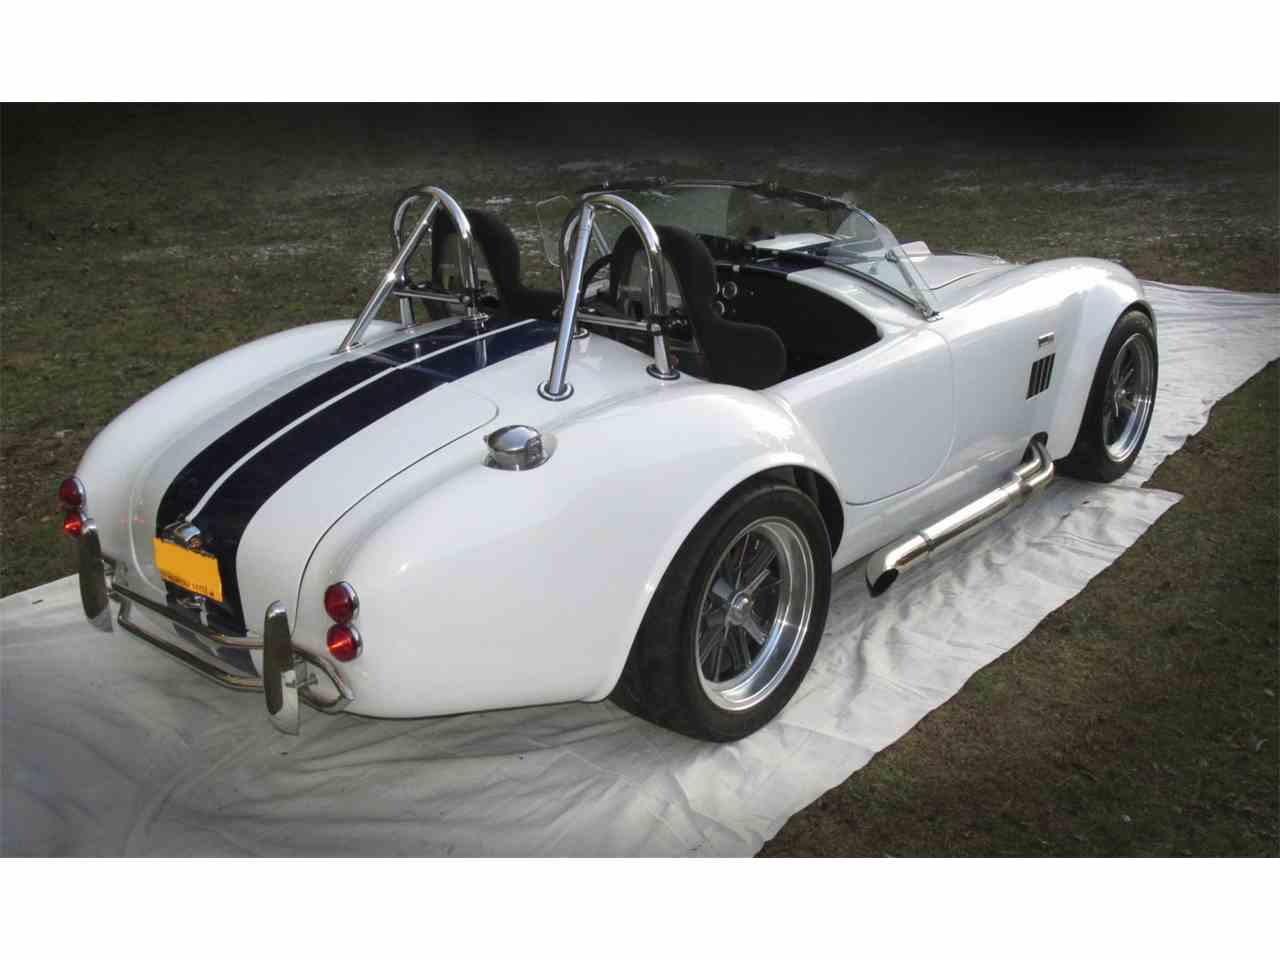 Large Picture of '65 Shelby Cobra Replica - $49,000.00 - N693